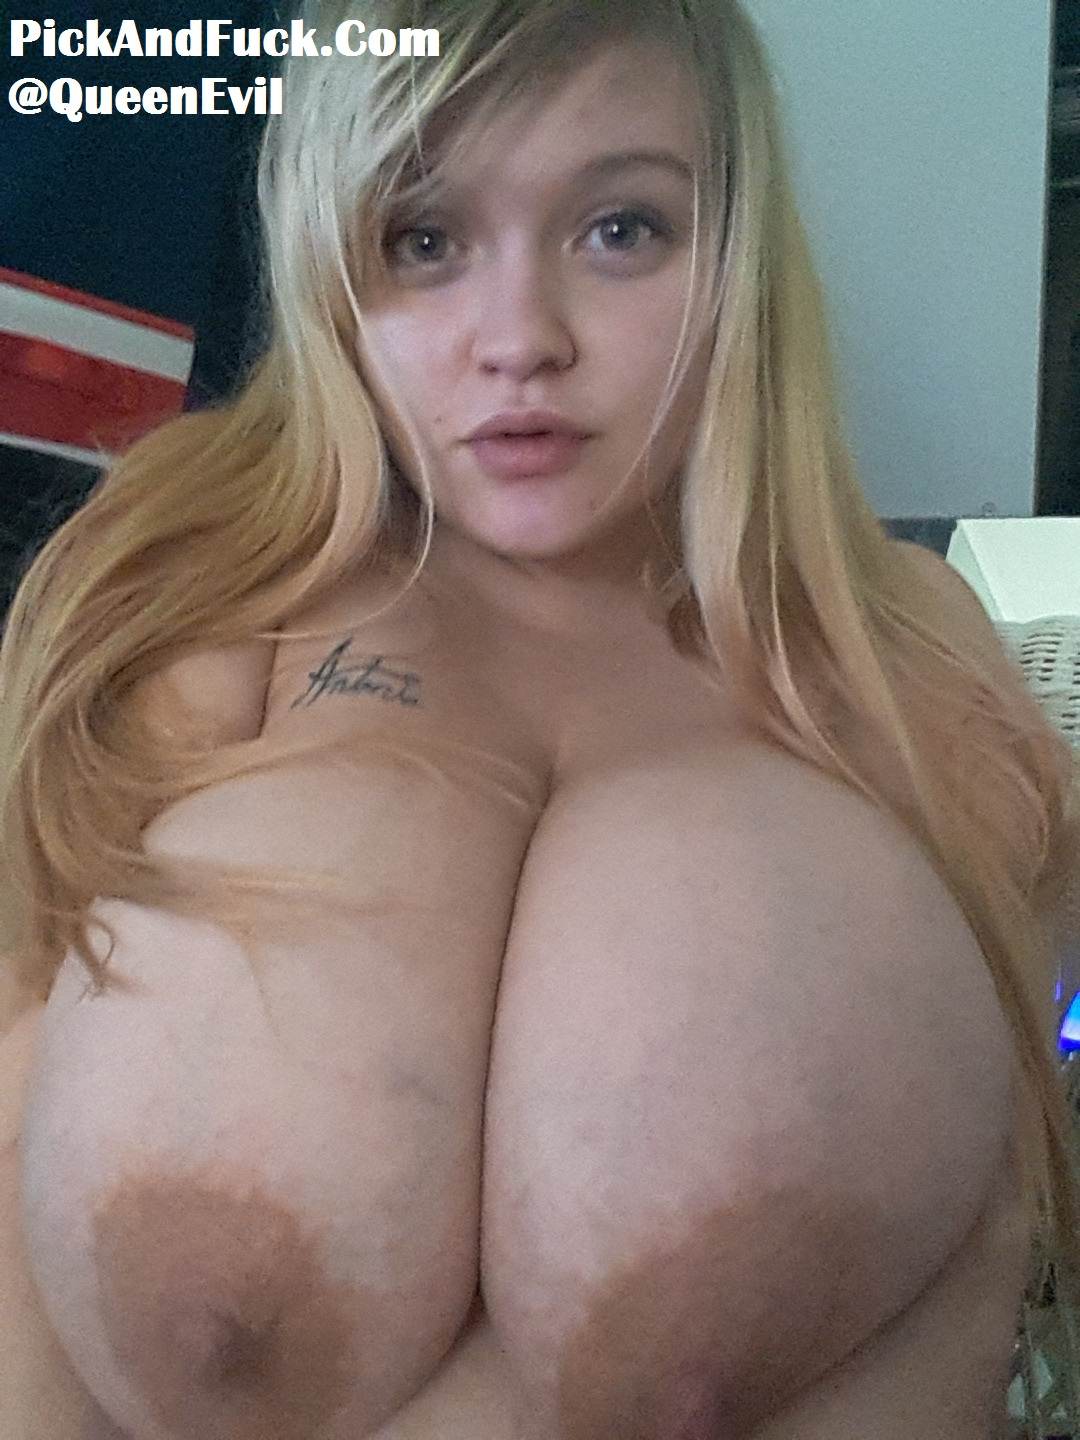 Blonde porn huge tits Huge Tits Blonde Sex Pictures Pass